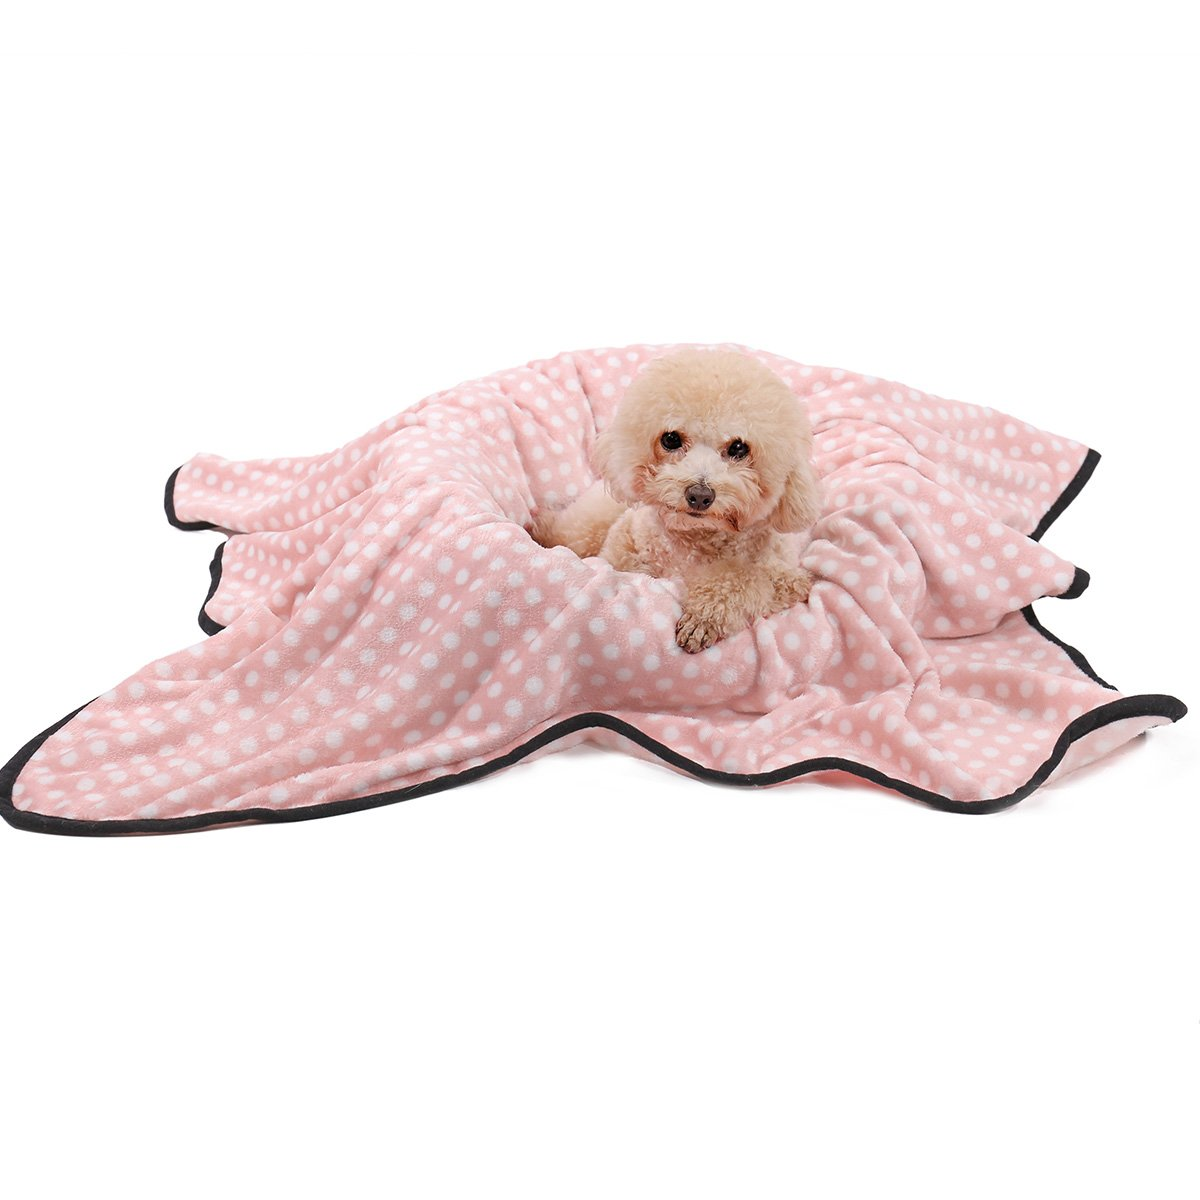 Ohana Pet Dog Blanket Fleece Snuggle Dotted Puppy Bed Ultra Soft Blanket Washable For Small Medium Large Dogs and Cats 3 Colors 3 Sizes